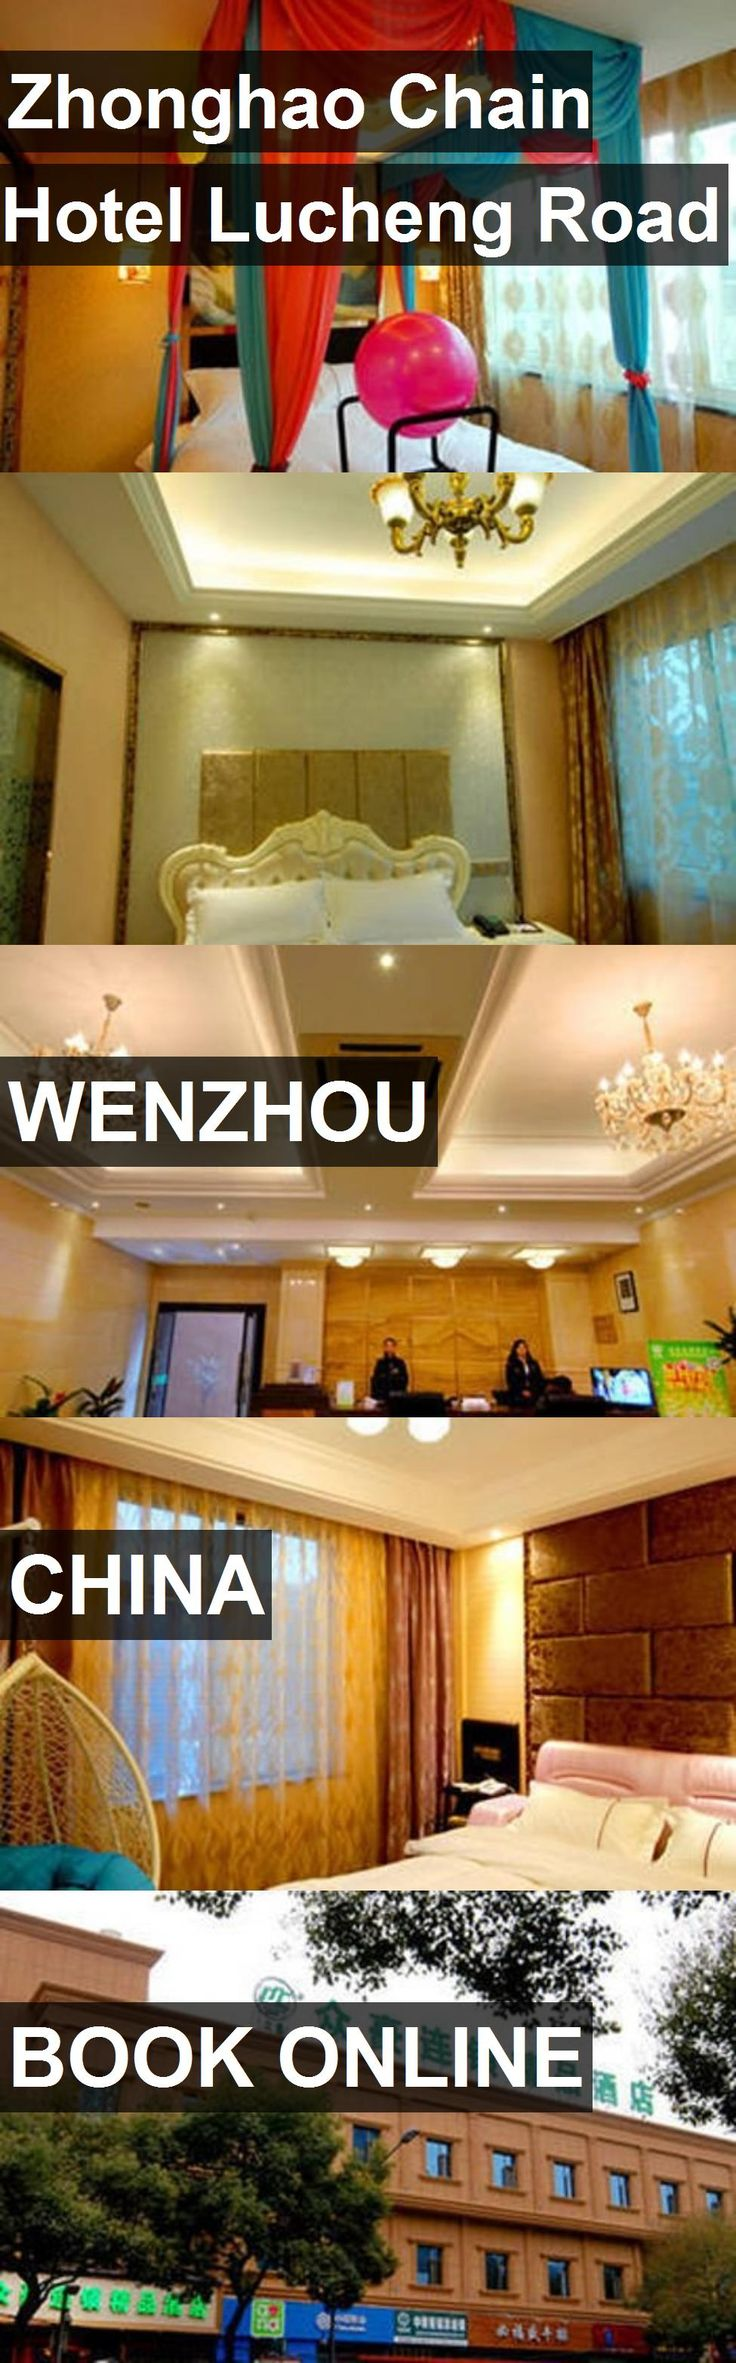 Hotel Zhonghao Chain Hotel Lucheng Road in Wenzhou, China. For more information, photos, reviews and best prices please follow the link. #China #Wenzhou #ZhonghaoChainHotelLuchengRoad #hotel #travel #vacation